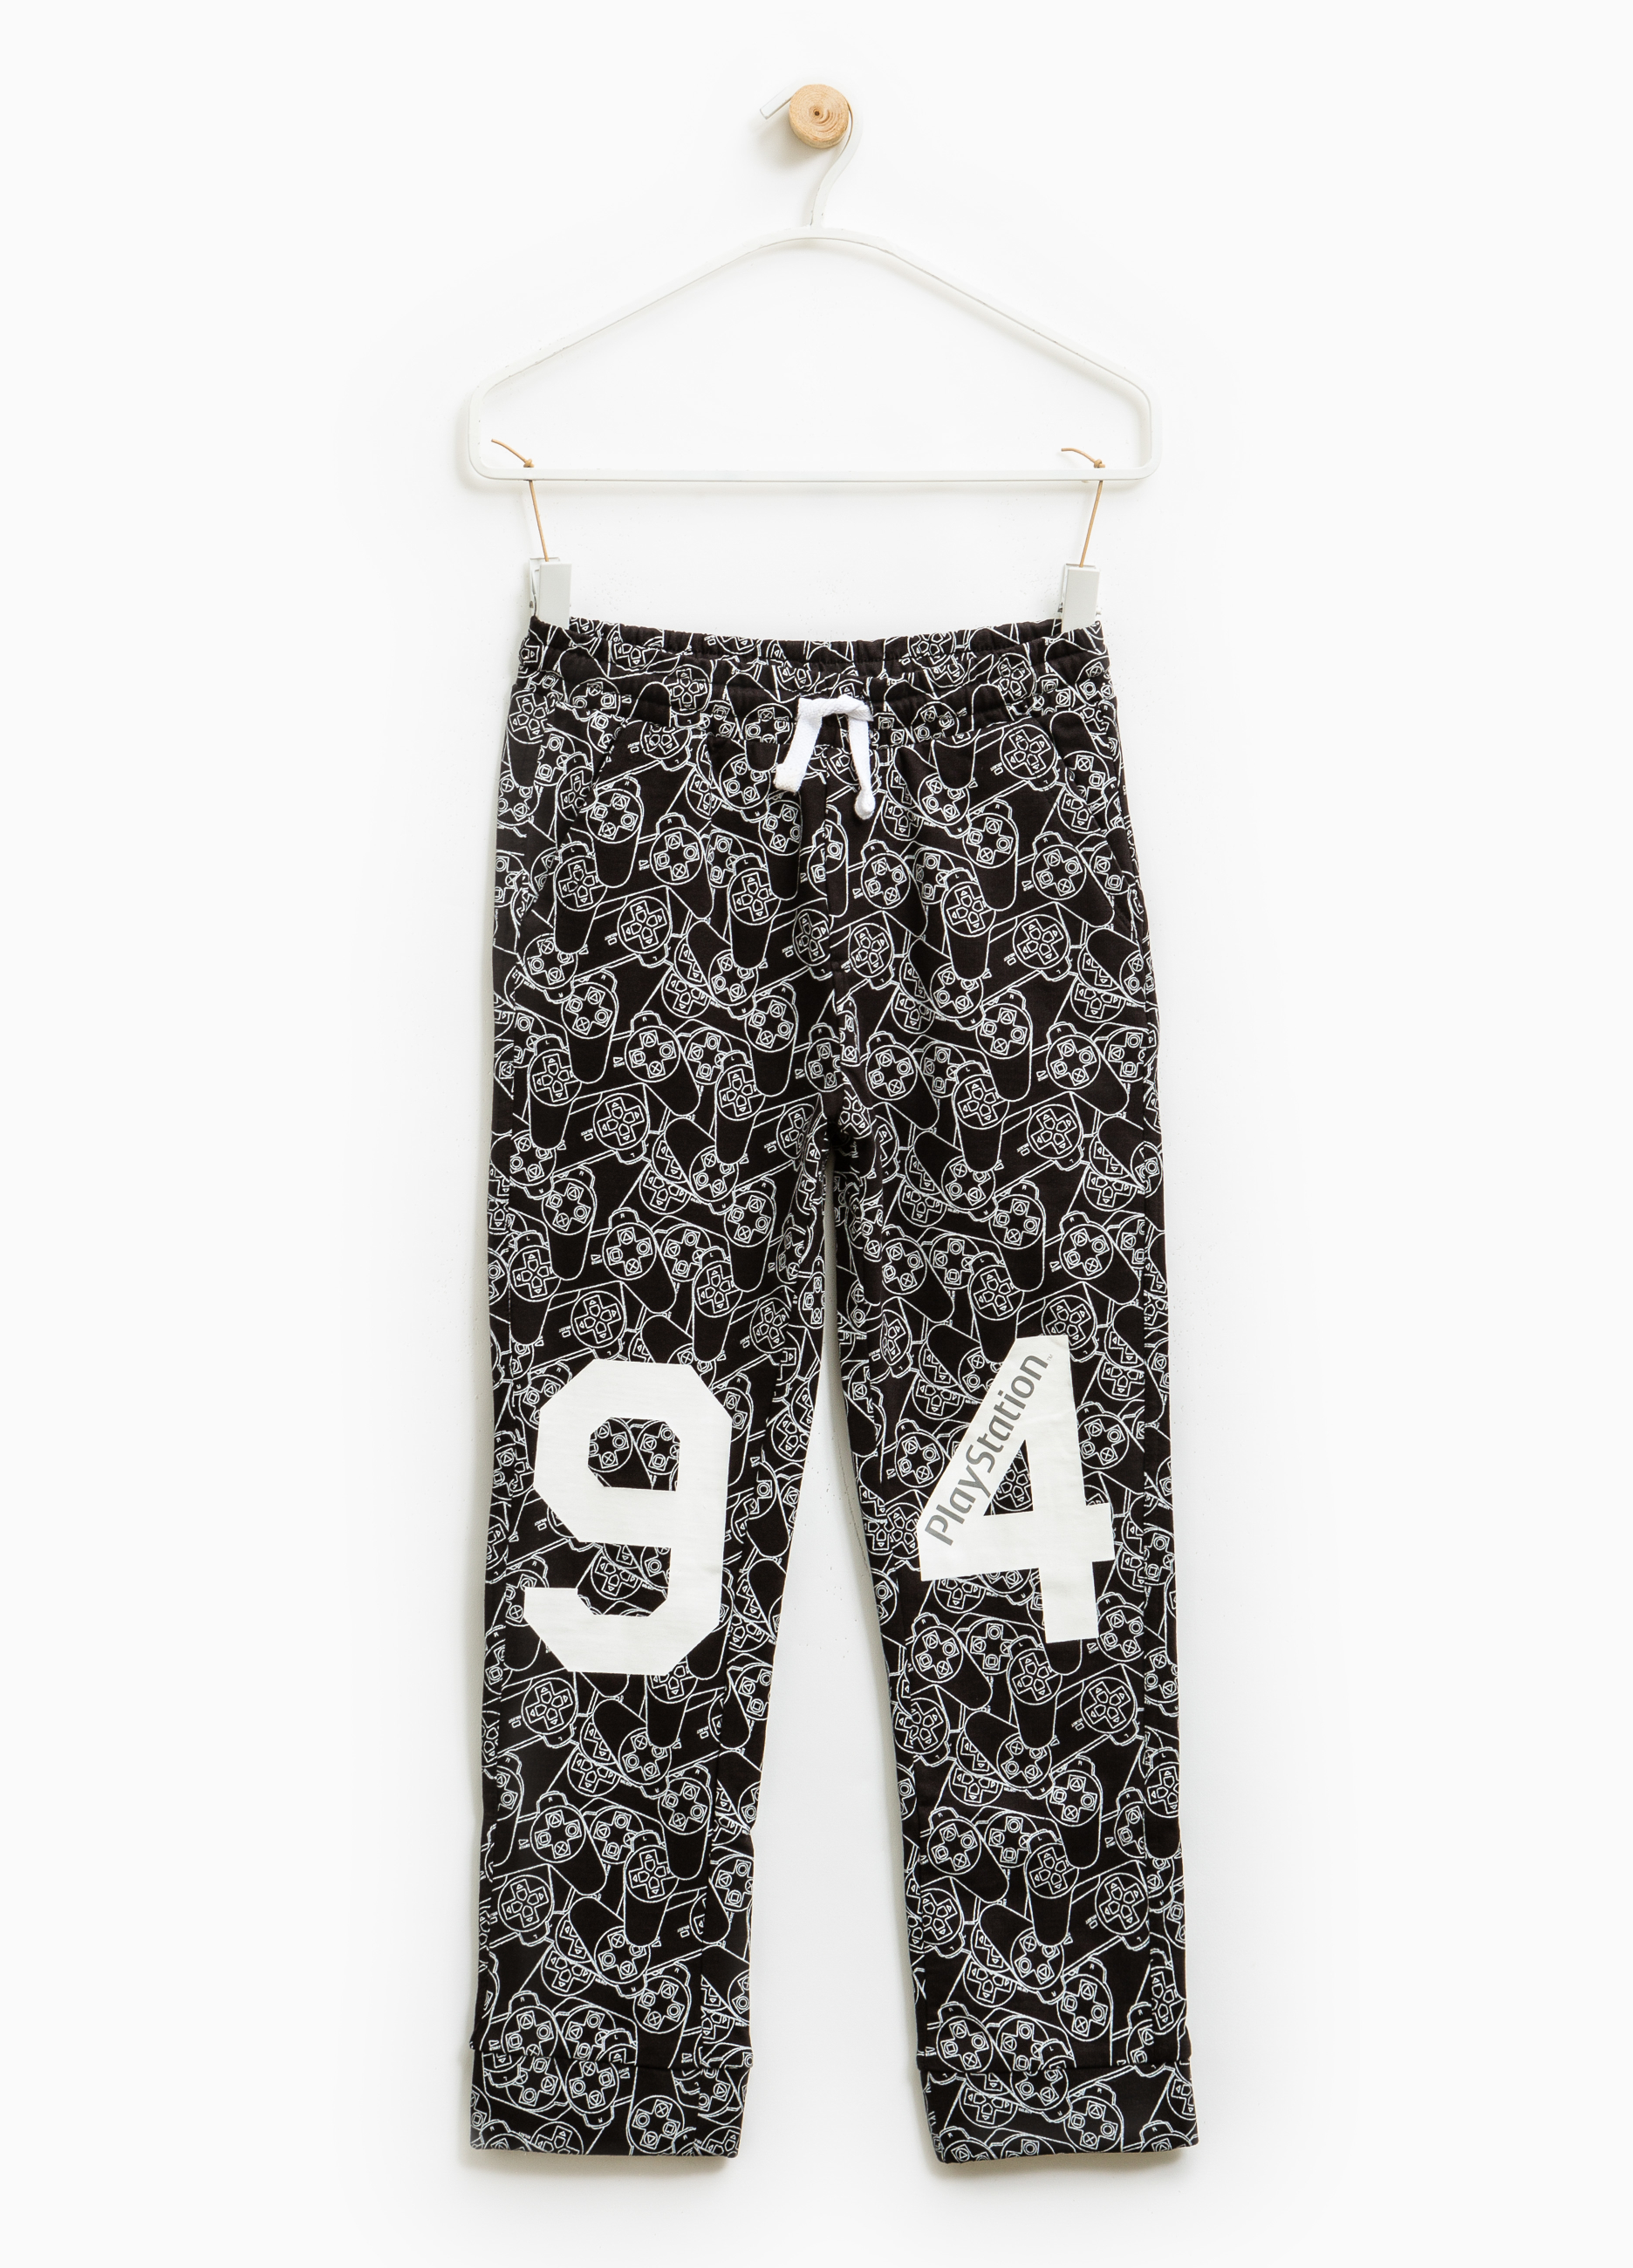 Patterned Joggers Interesting Design Ideas